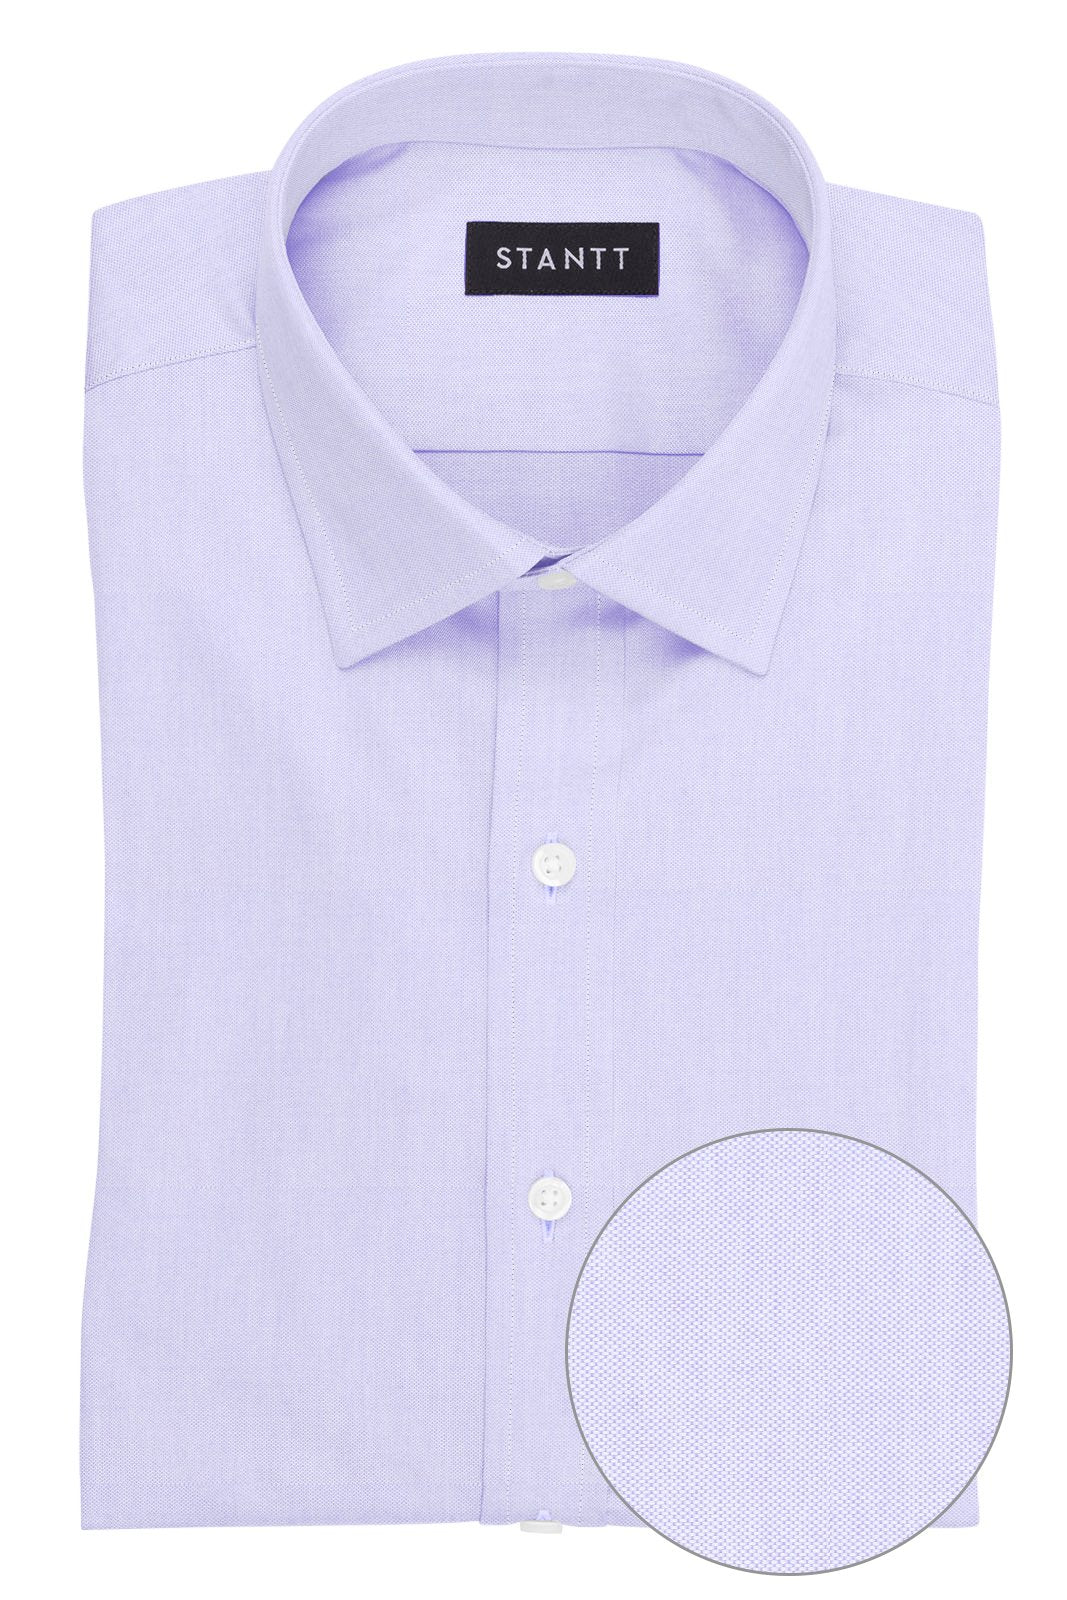 Lavender Pinpoint Oxford: Modified-Spread Collar, French Cuff